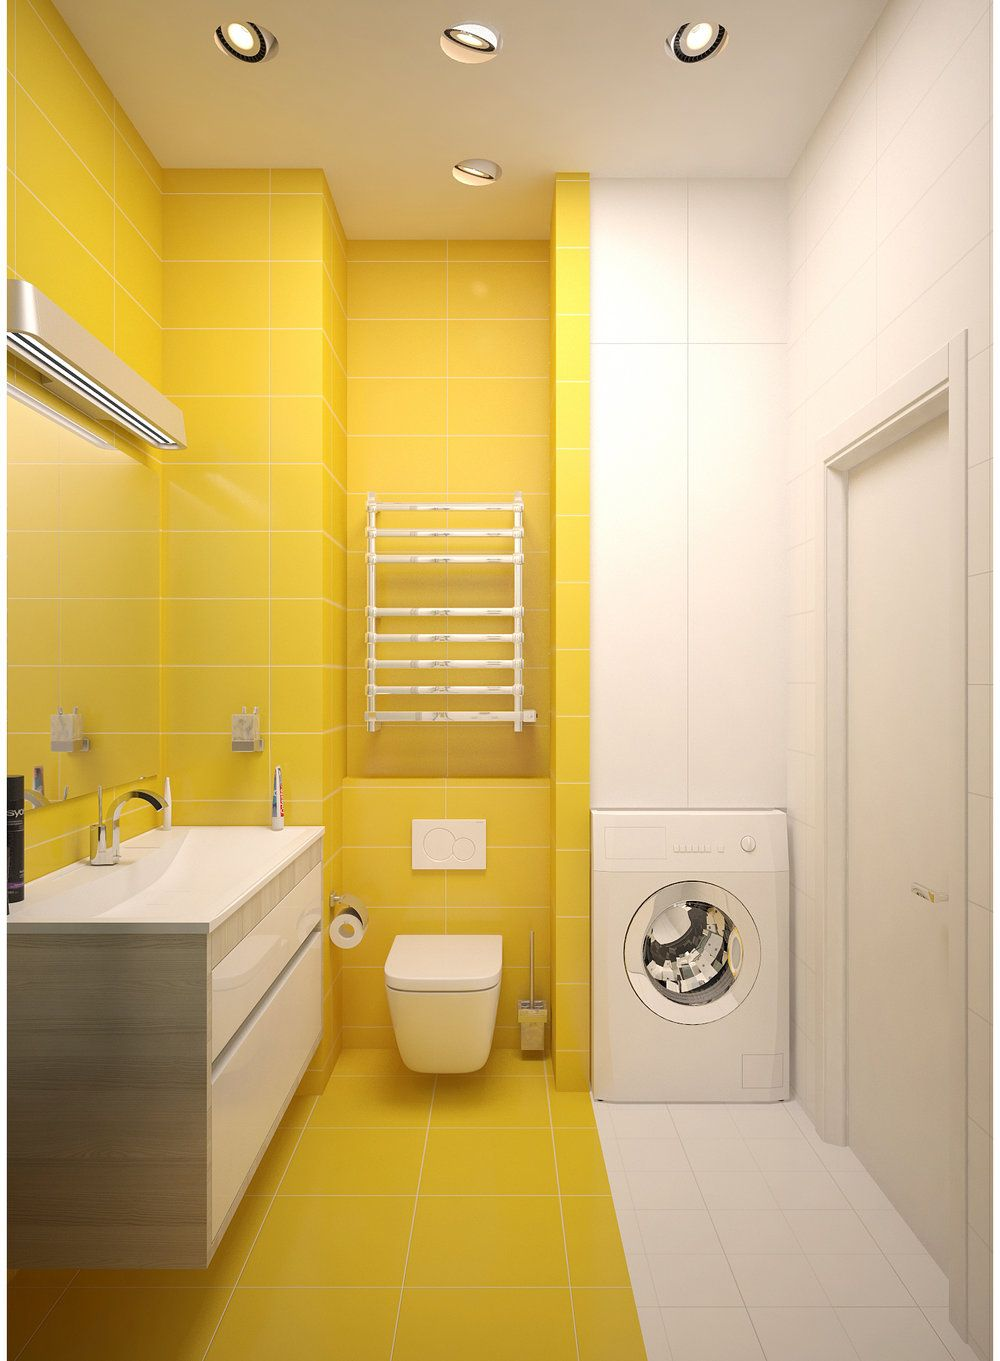 Yellow and white bathroom interior. Washing machine. Yellow